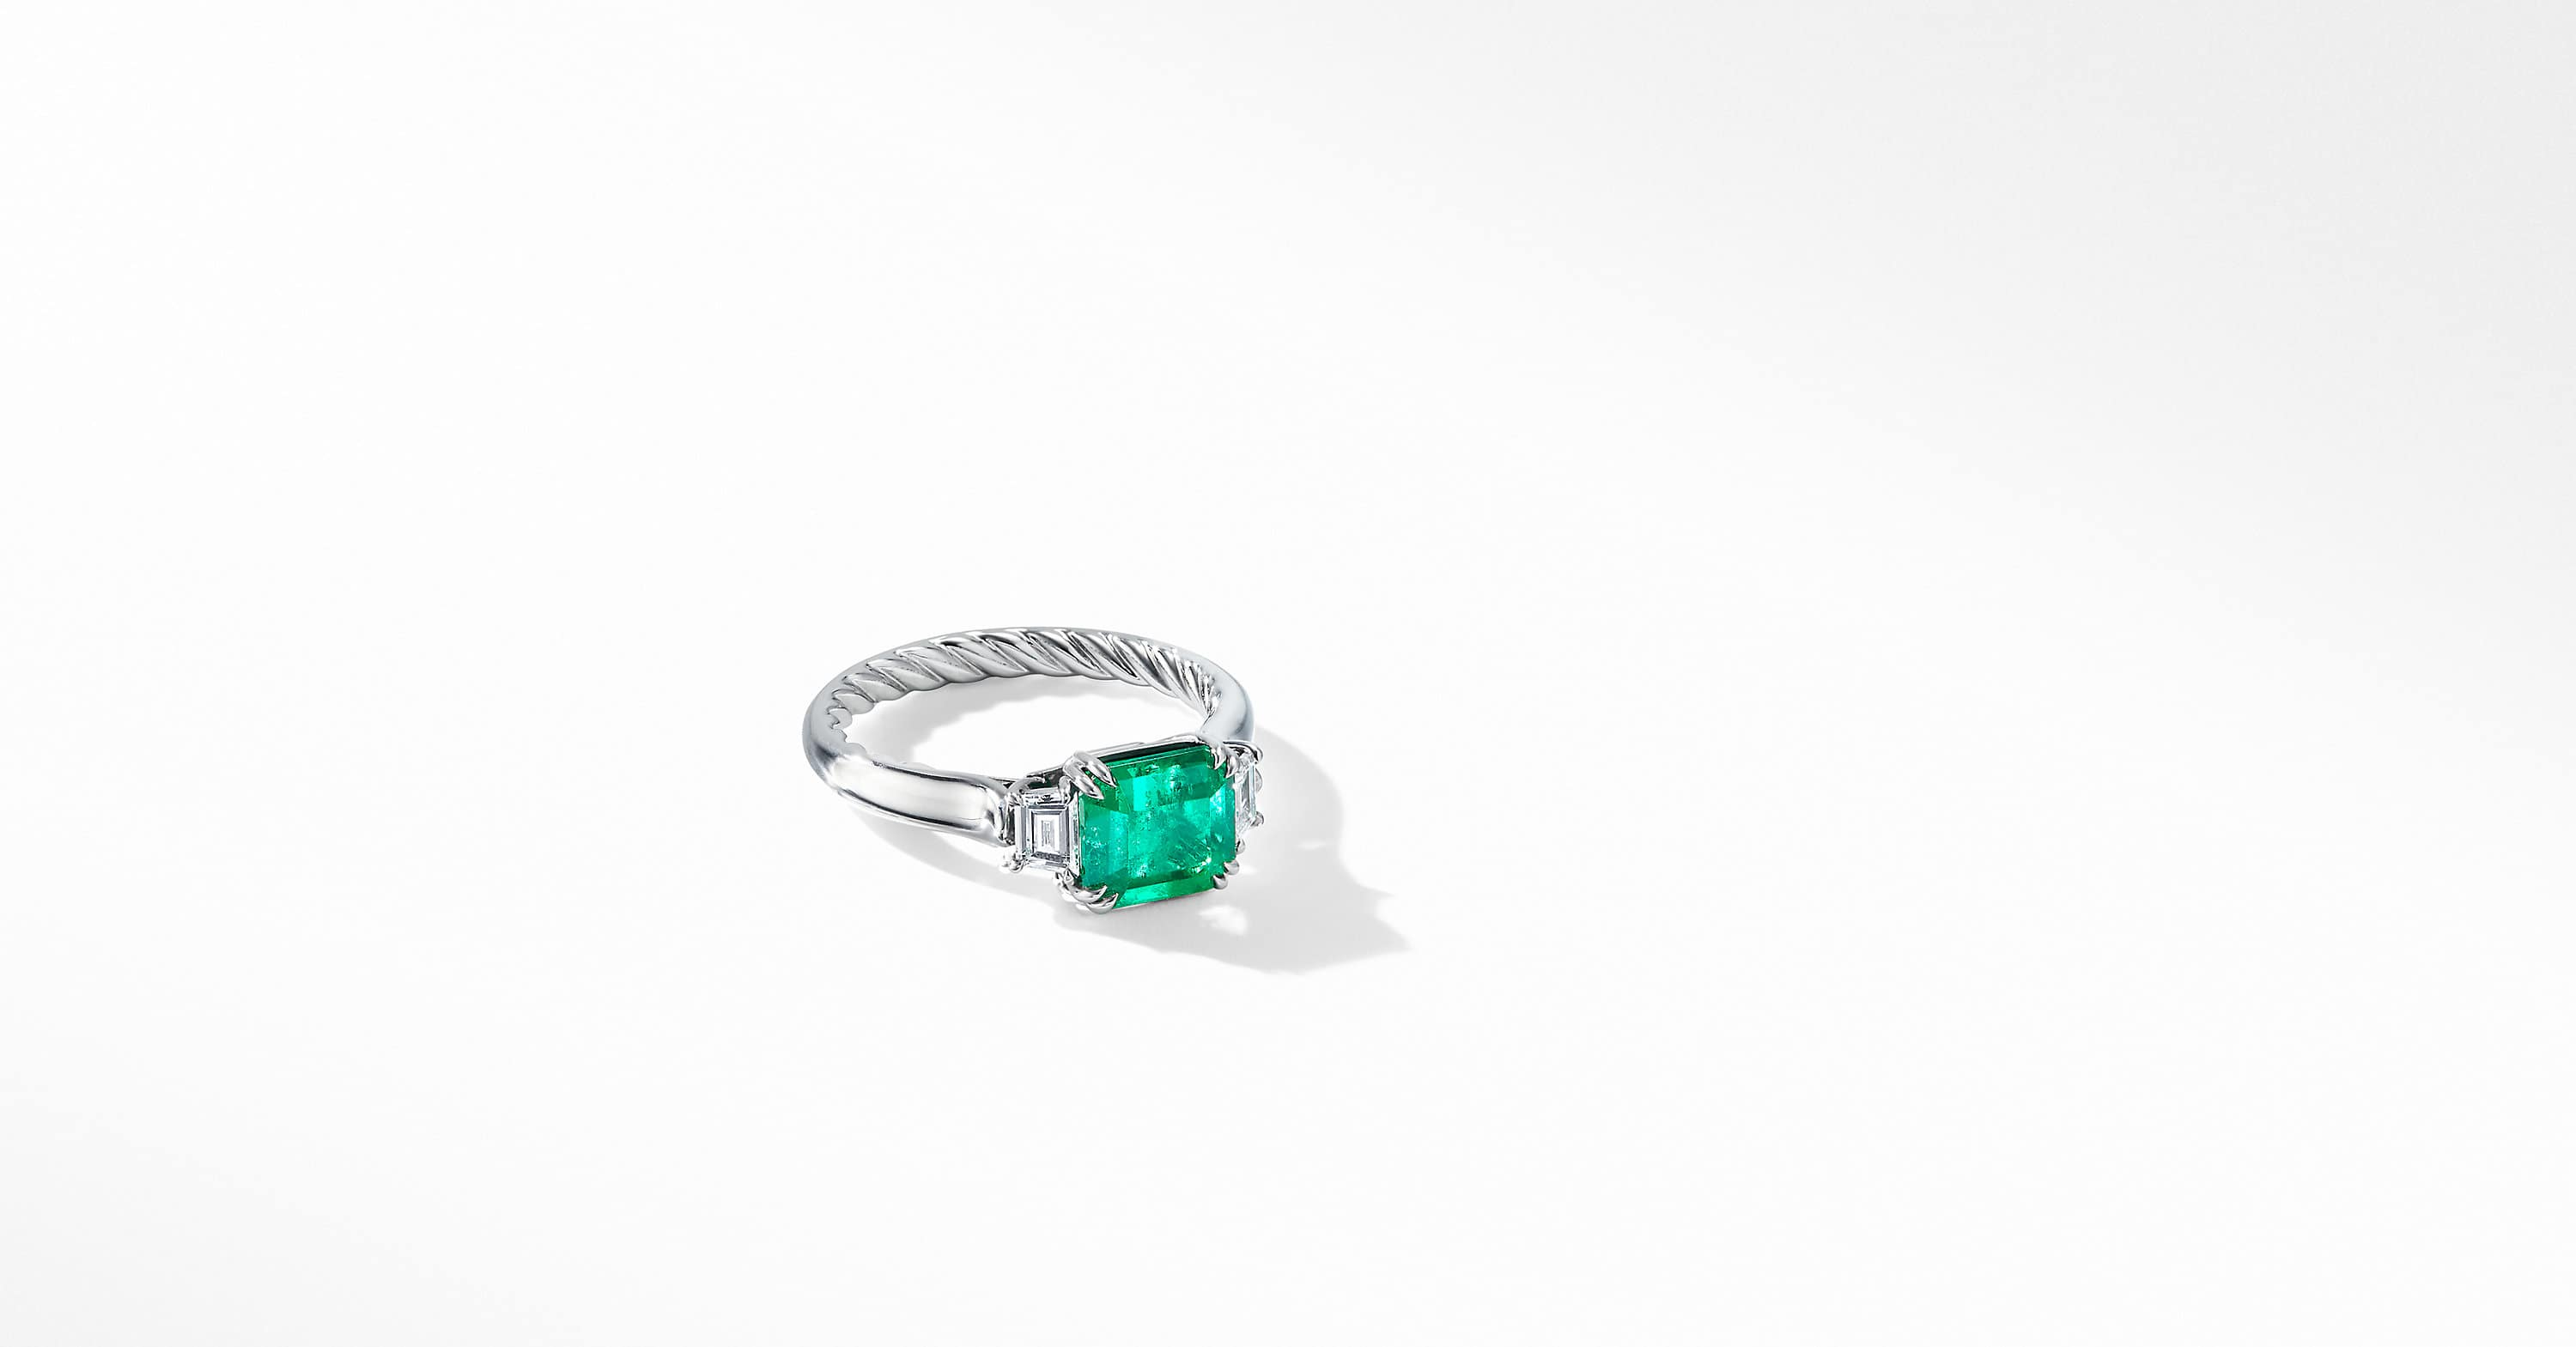 DY Three-Stone Engagement Ring in Platinum, Emerald